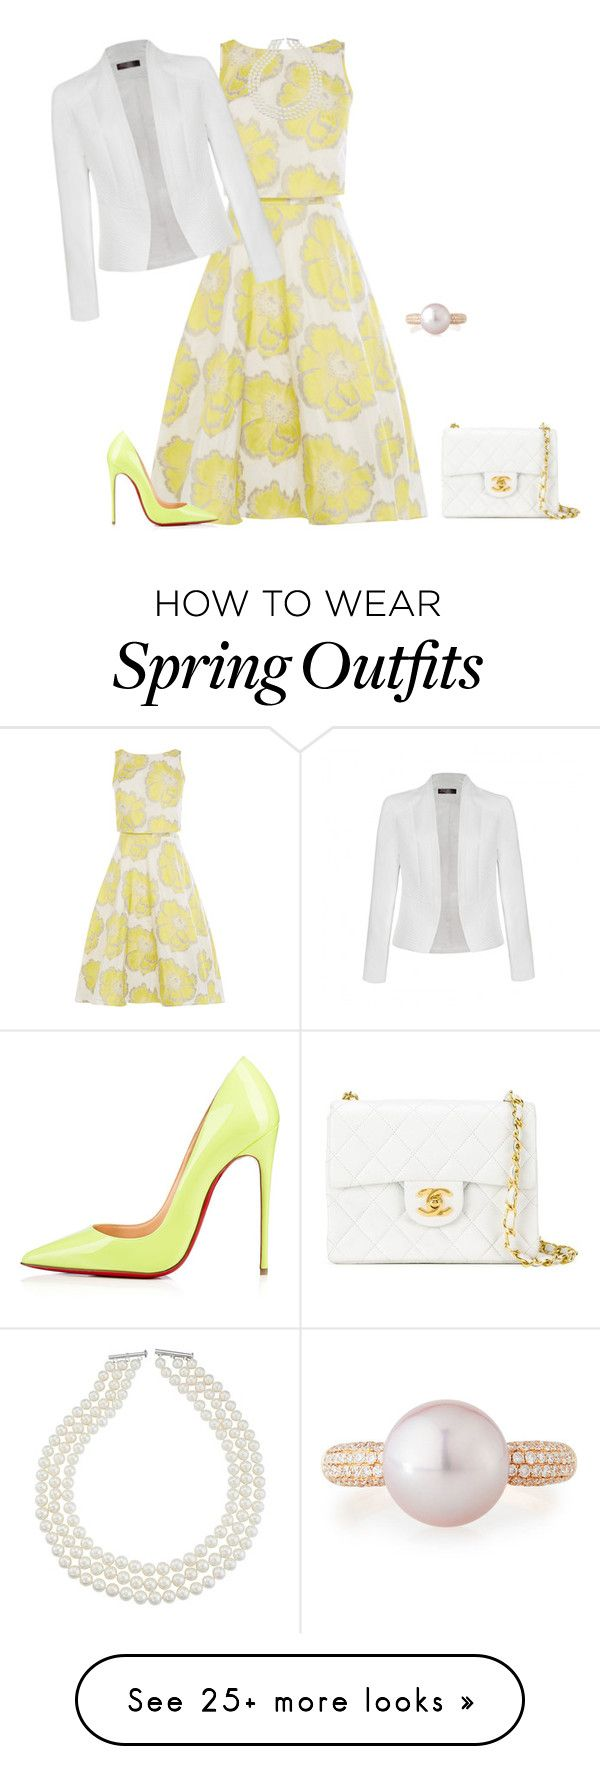 """""""outfit 3786"""" by natalyag on Polyvore featuring Ally Fashion, Chanel and Belpearl"""